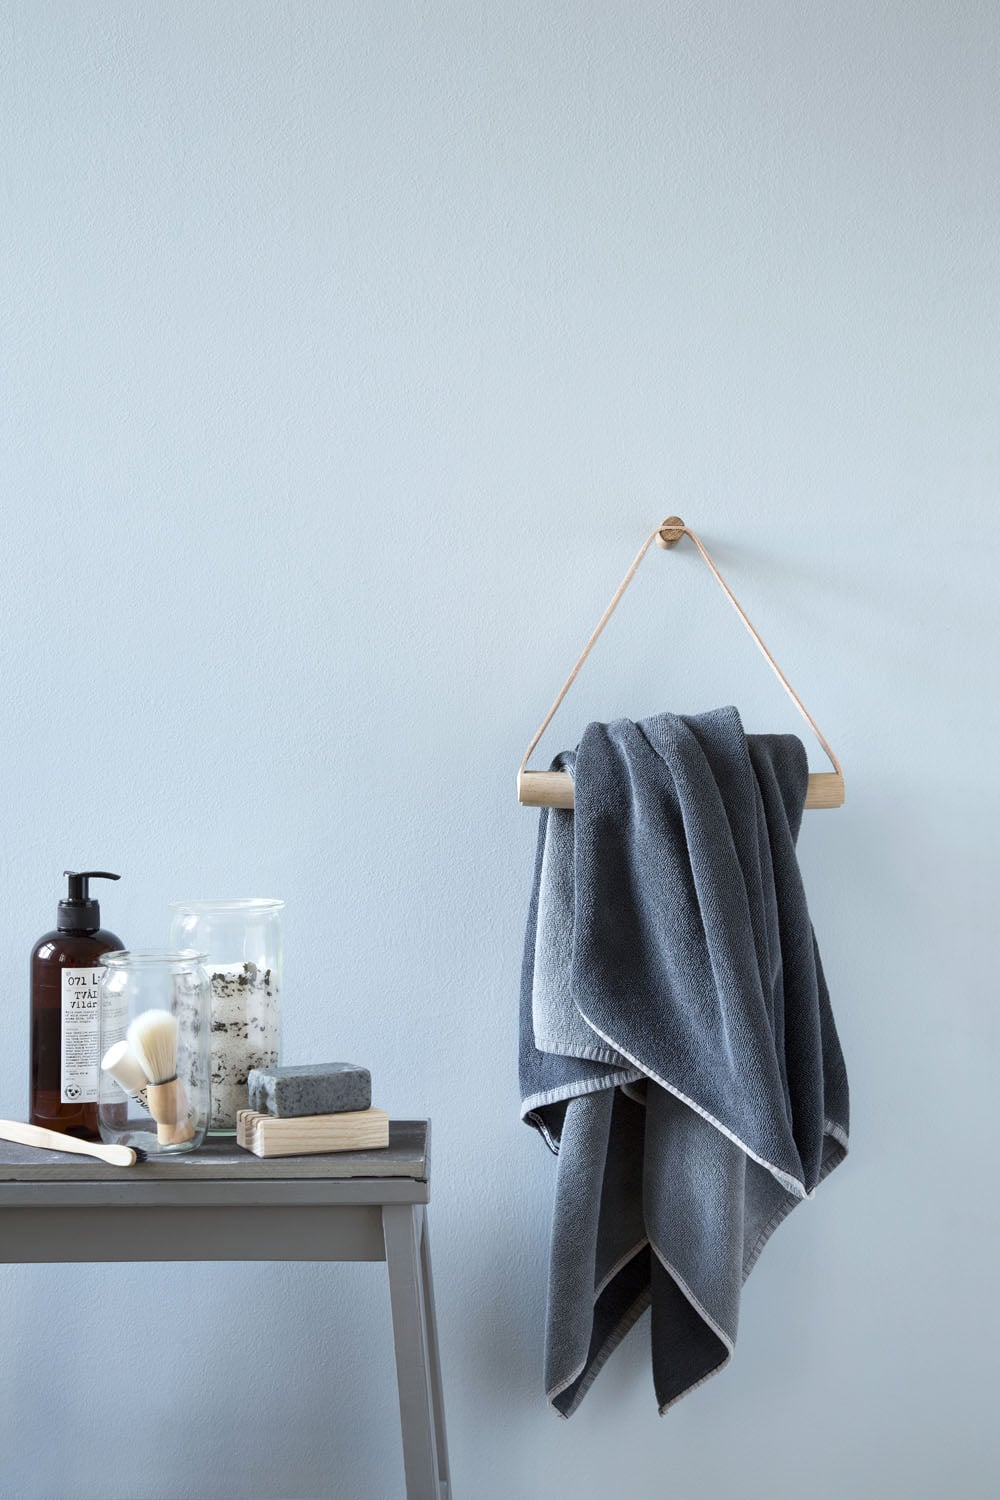 Leather and oak towel hanger | by Wirth